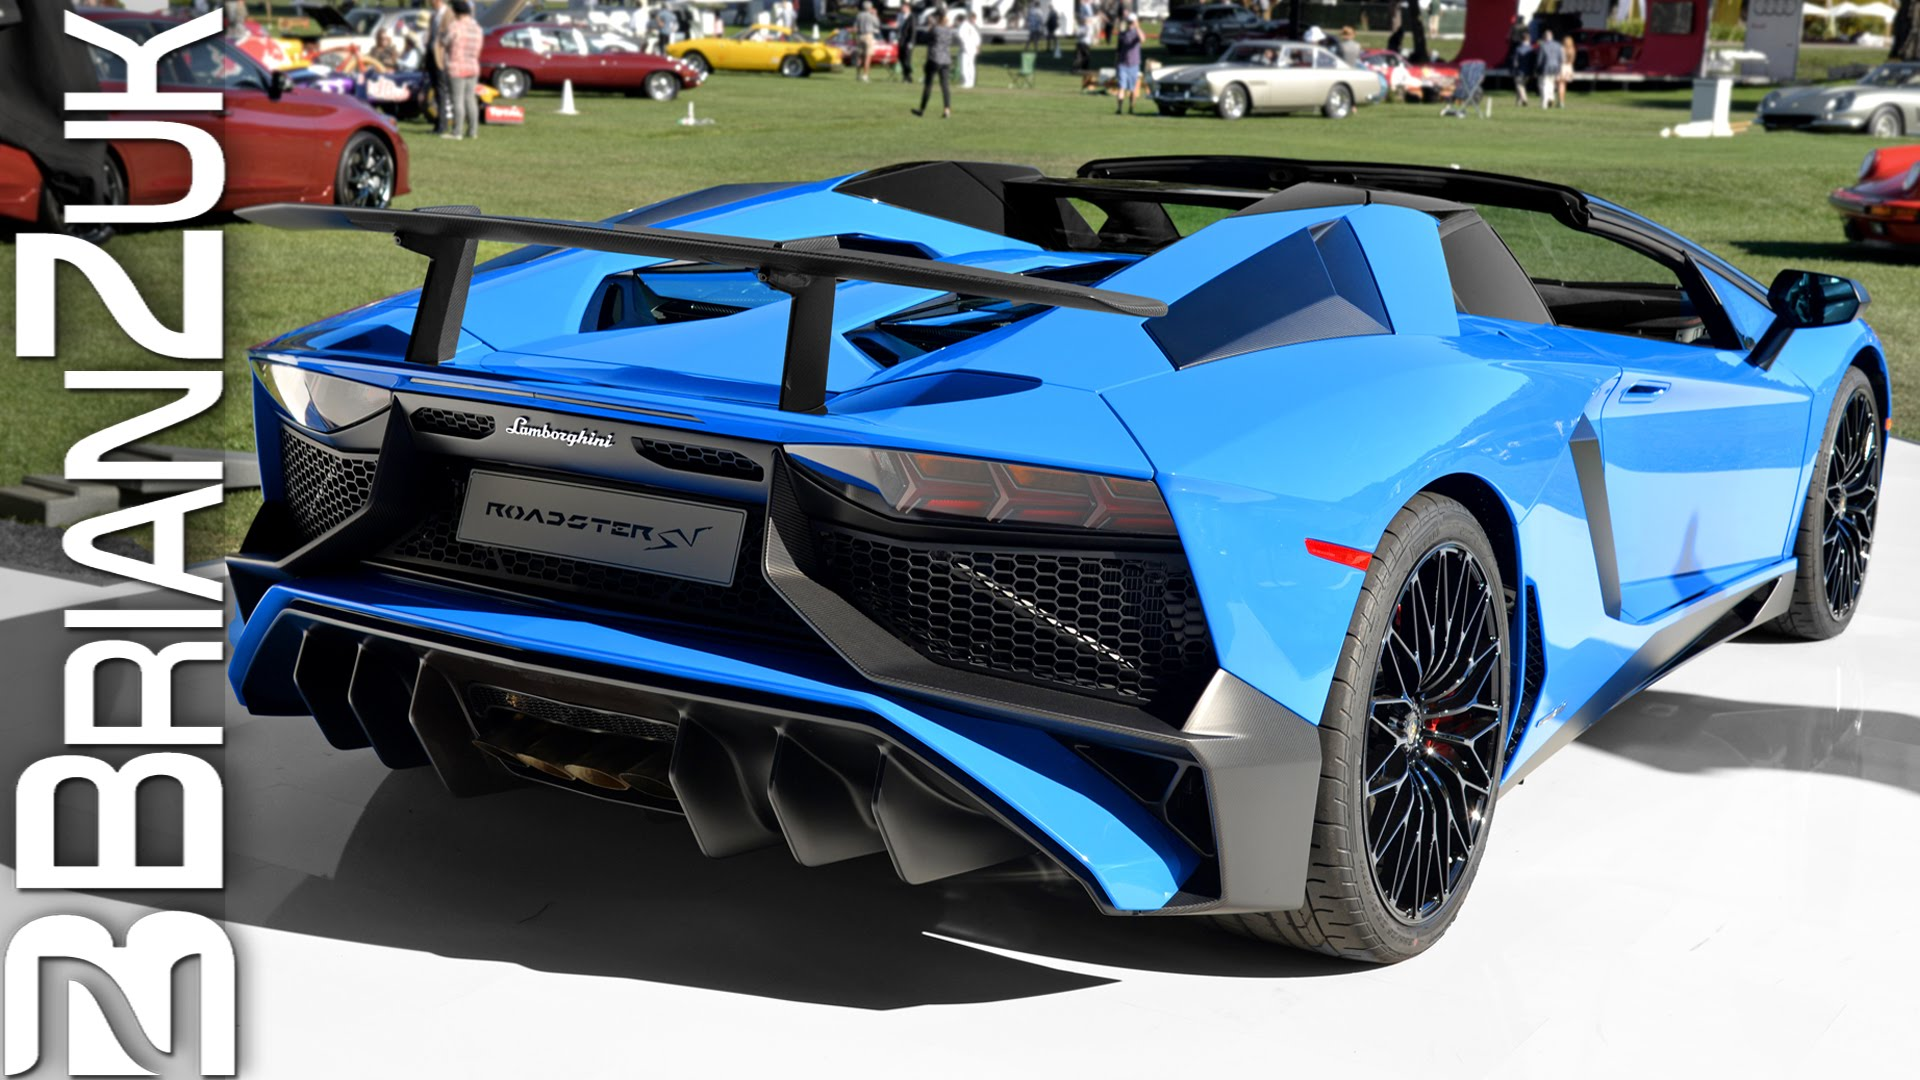 Check Out The All New Lamborghini Aventador Lp750 4 Sv Roadster